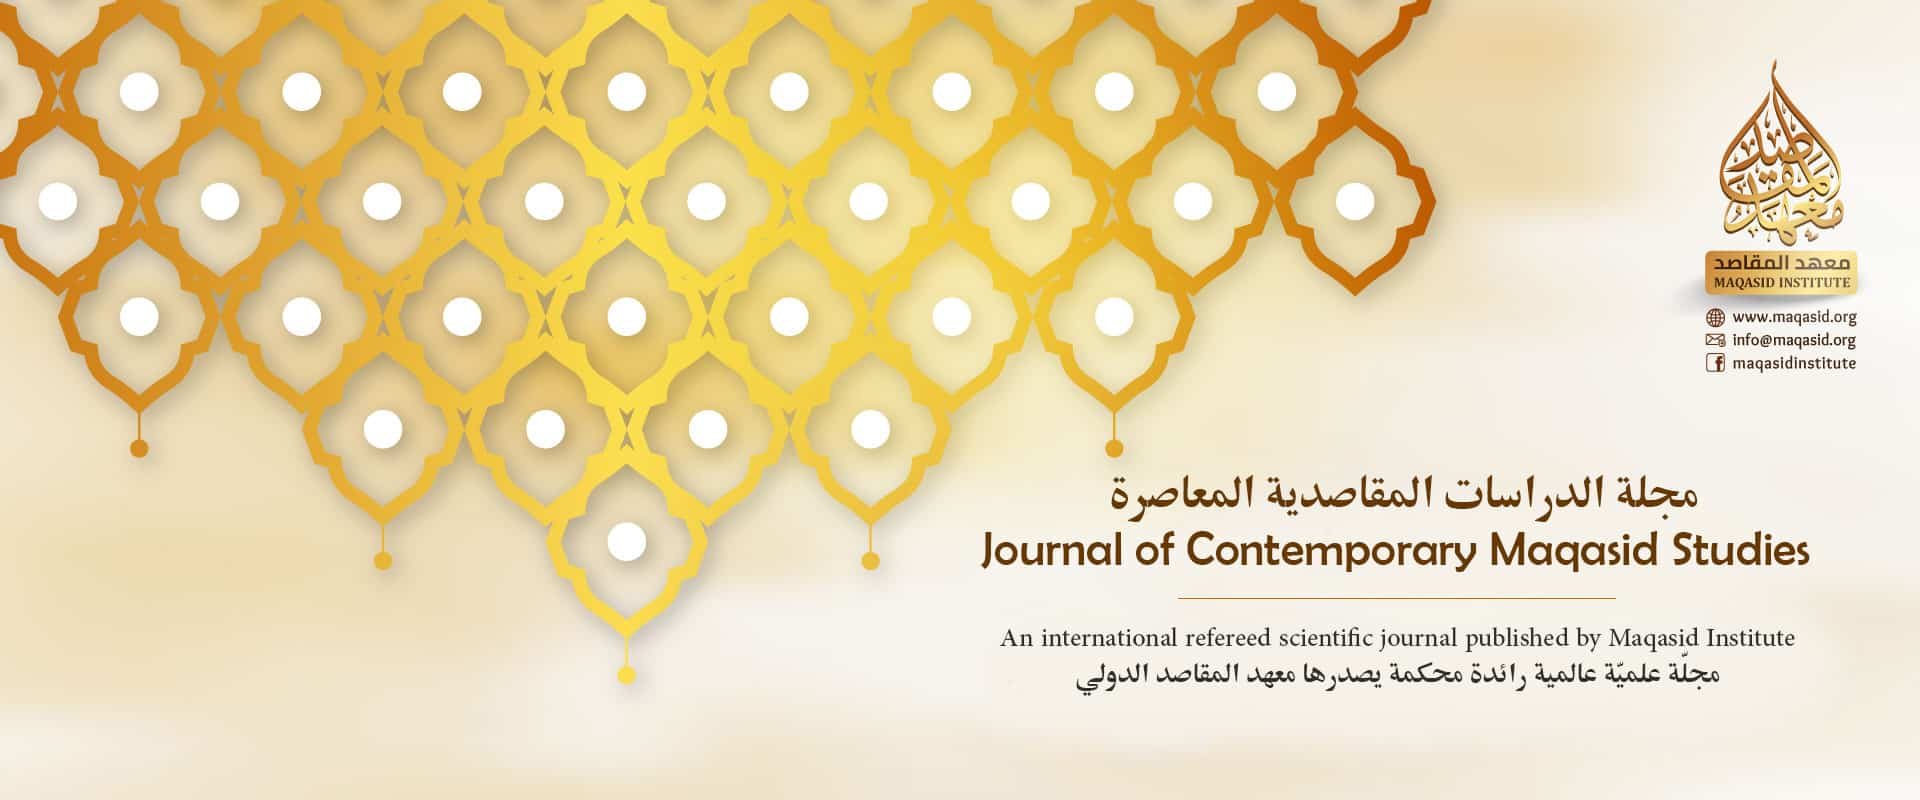 The Journal of Contemporary Maqasid Studies